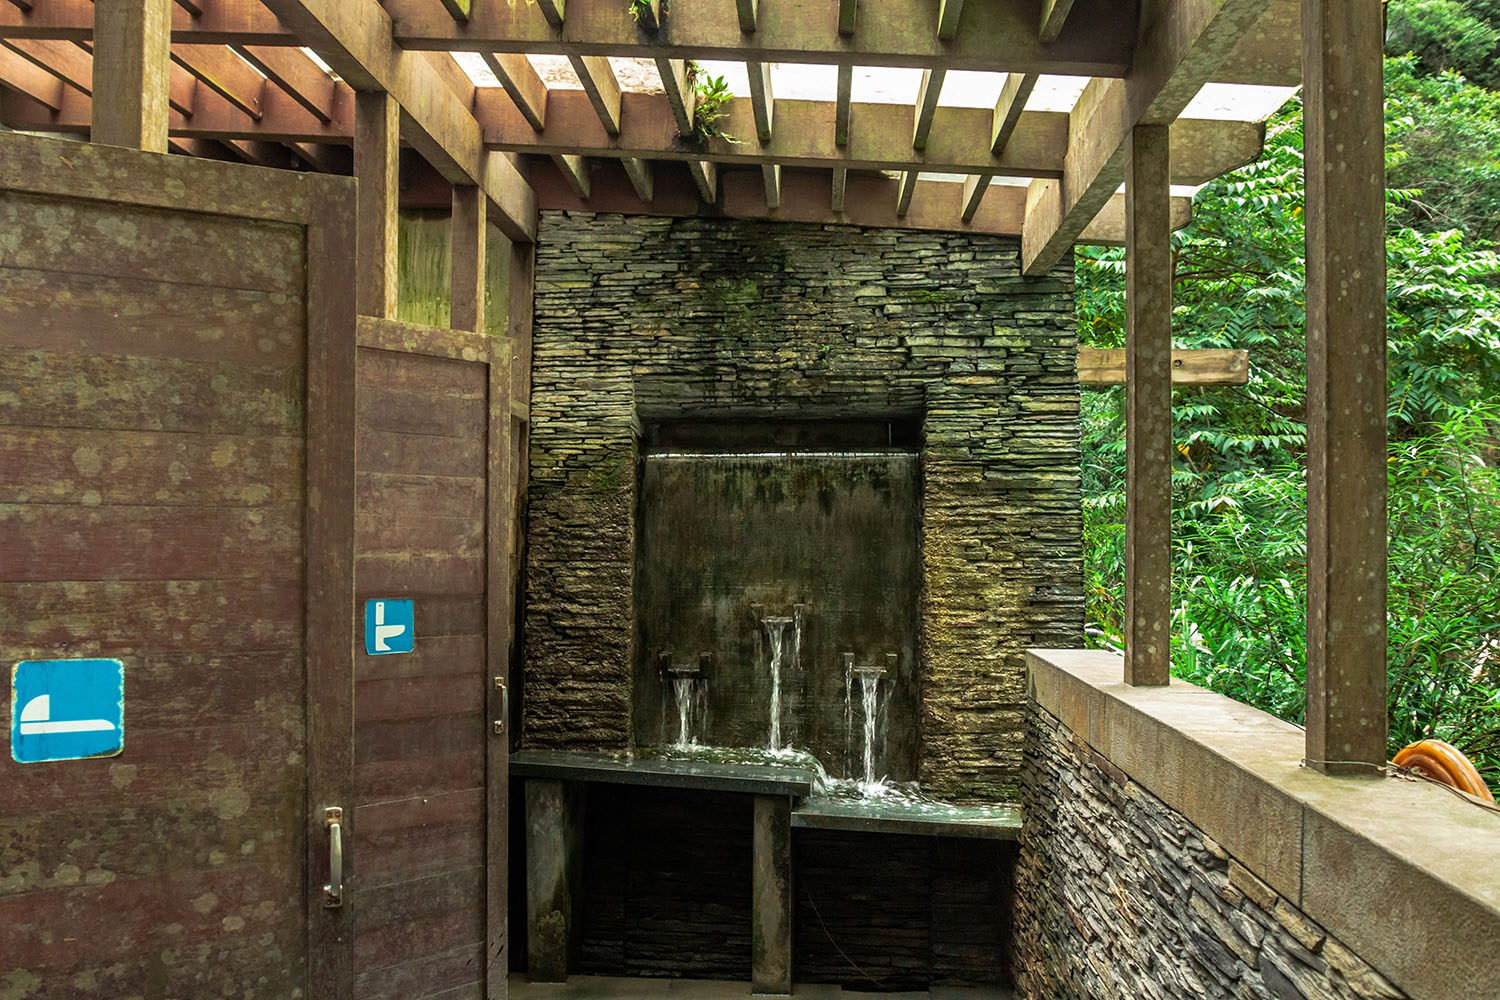 500px Photo ID: 117506037 - A washroom which taps it's water from the nearby waterfall. This is on the Baiyang Trail in Taroko National Park. Because this is a (mild) Hiking trail you don't expect to find such a strange luxury on the way.